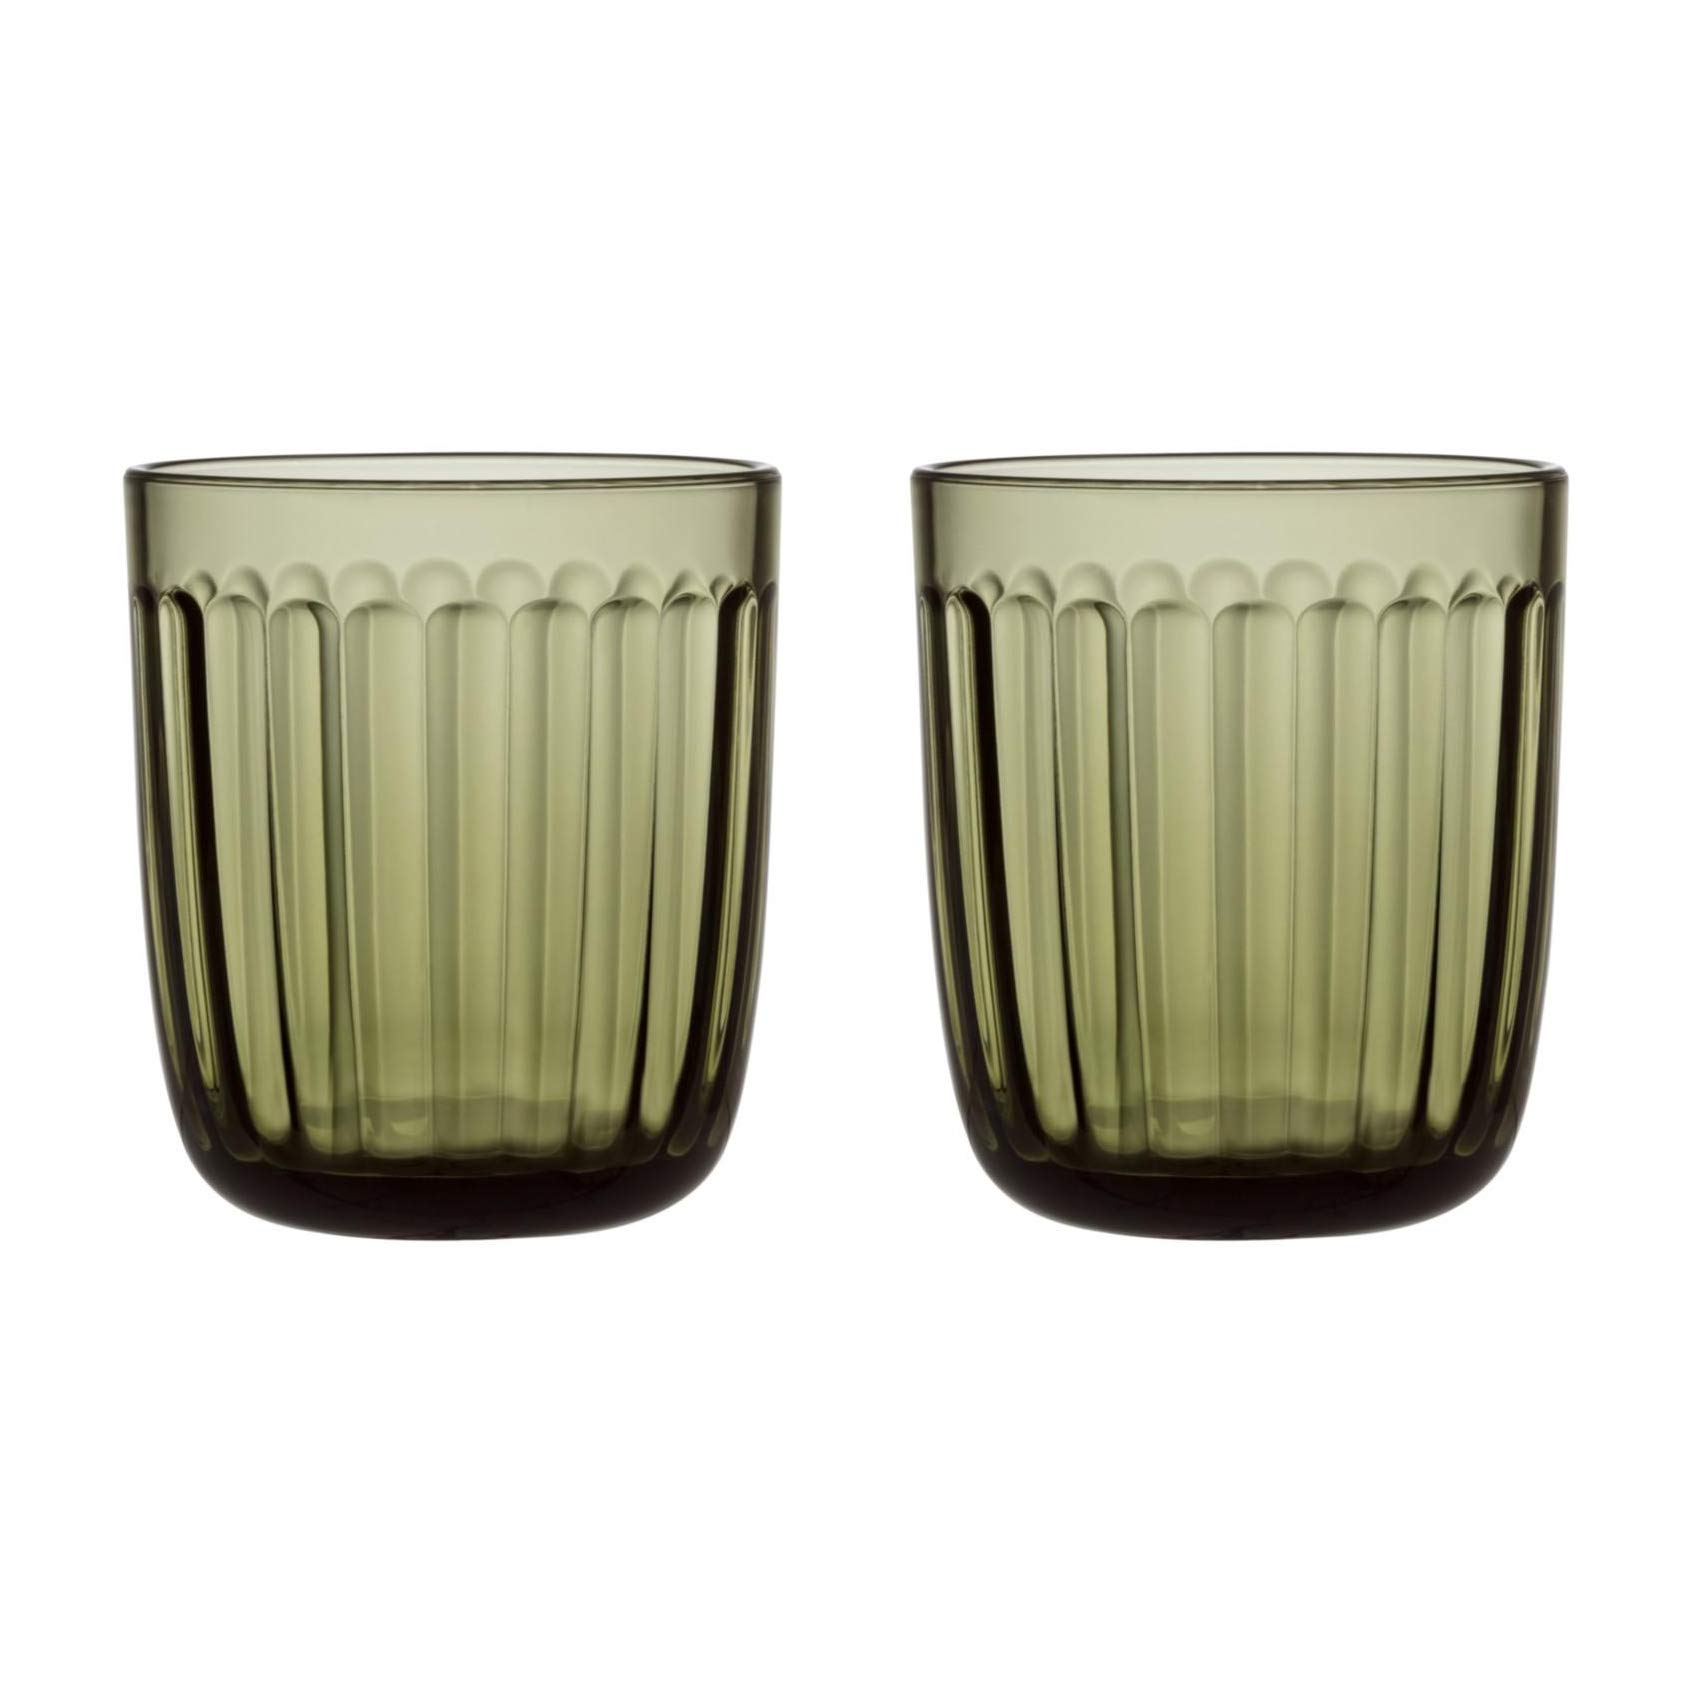 Iittala Raami 1026951 Water Glasses by Iittala